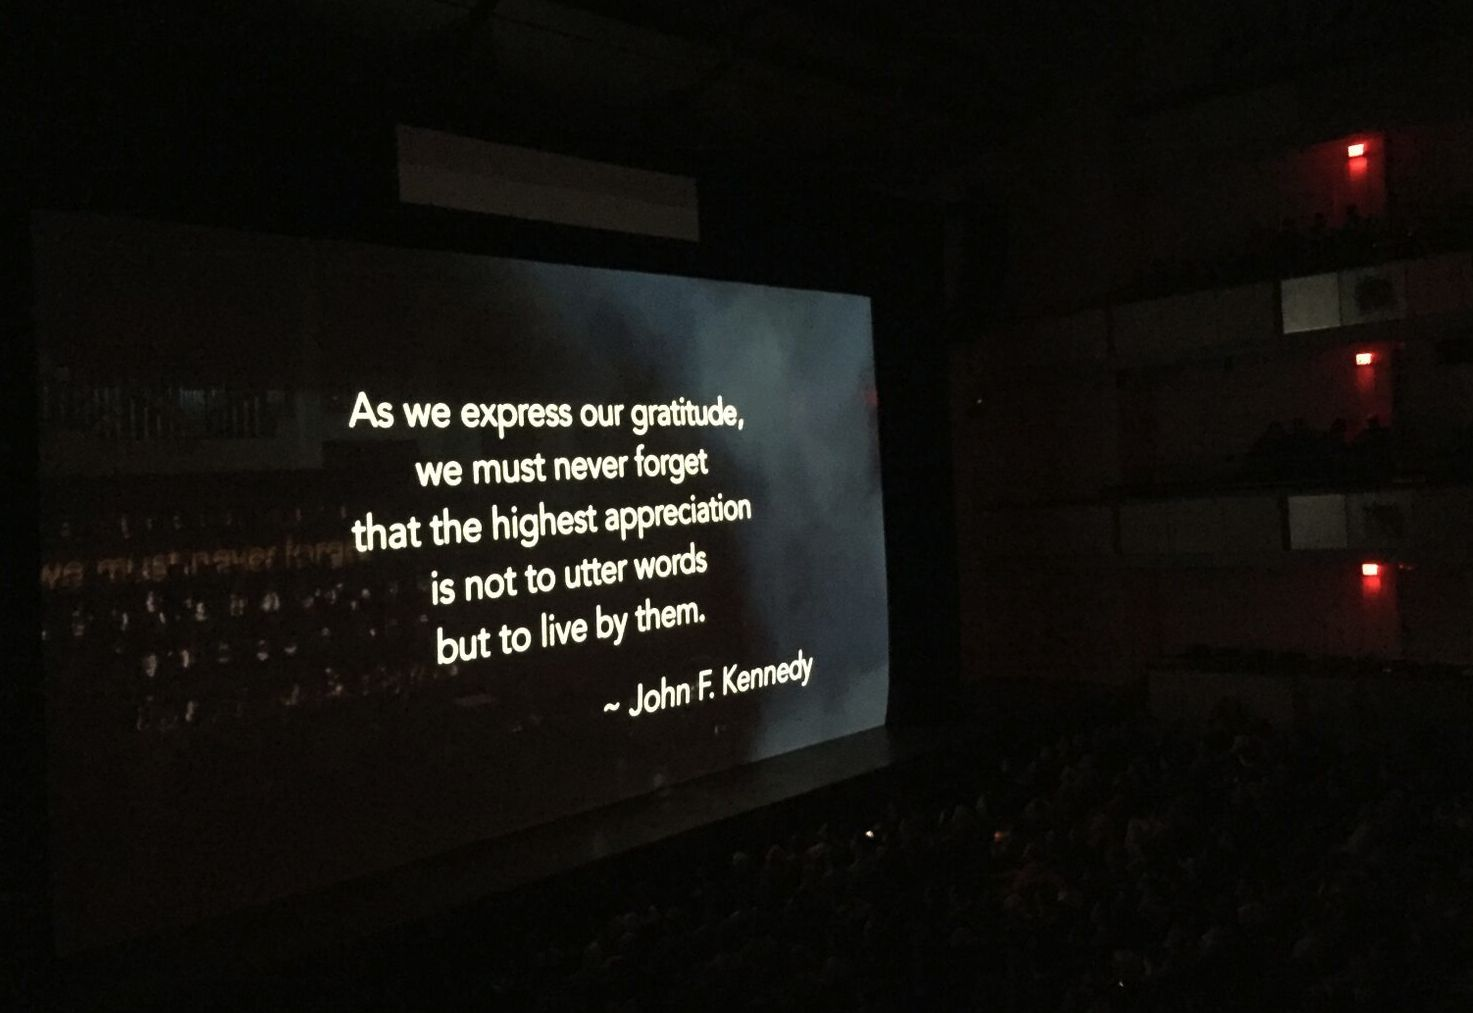 Legacy  was screened at the Kennedy Center Concert Hall (JFK Centennial Celebration,May 25, 2017) prior to a performance of  The Hubble Cantada .